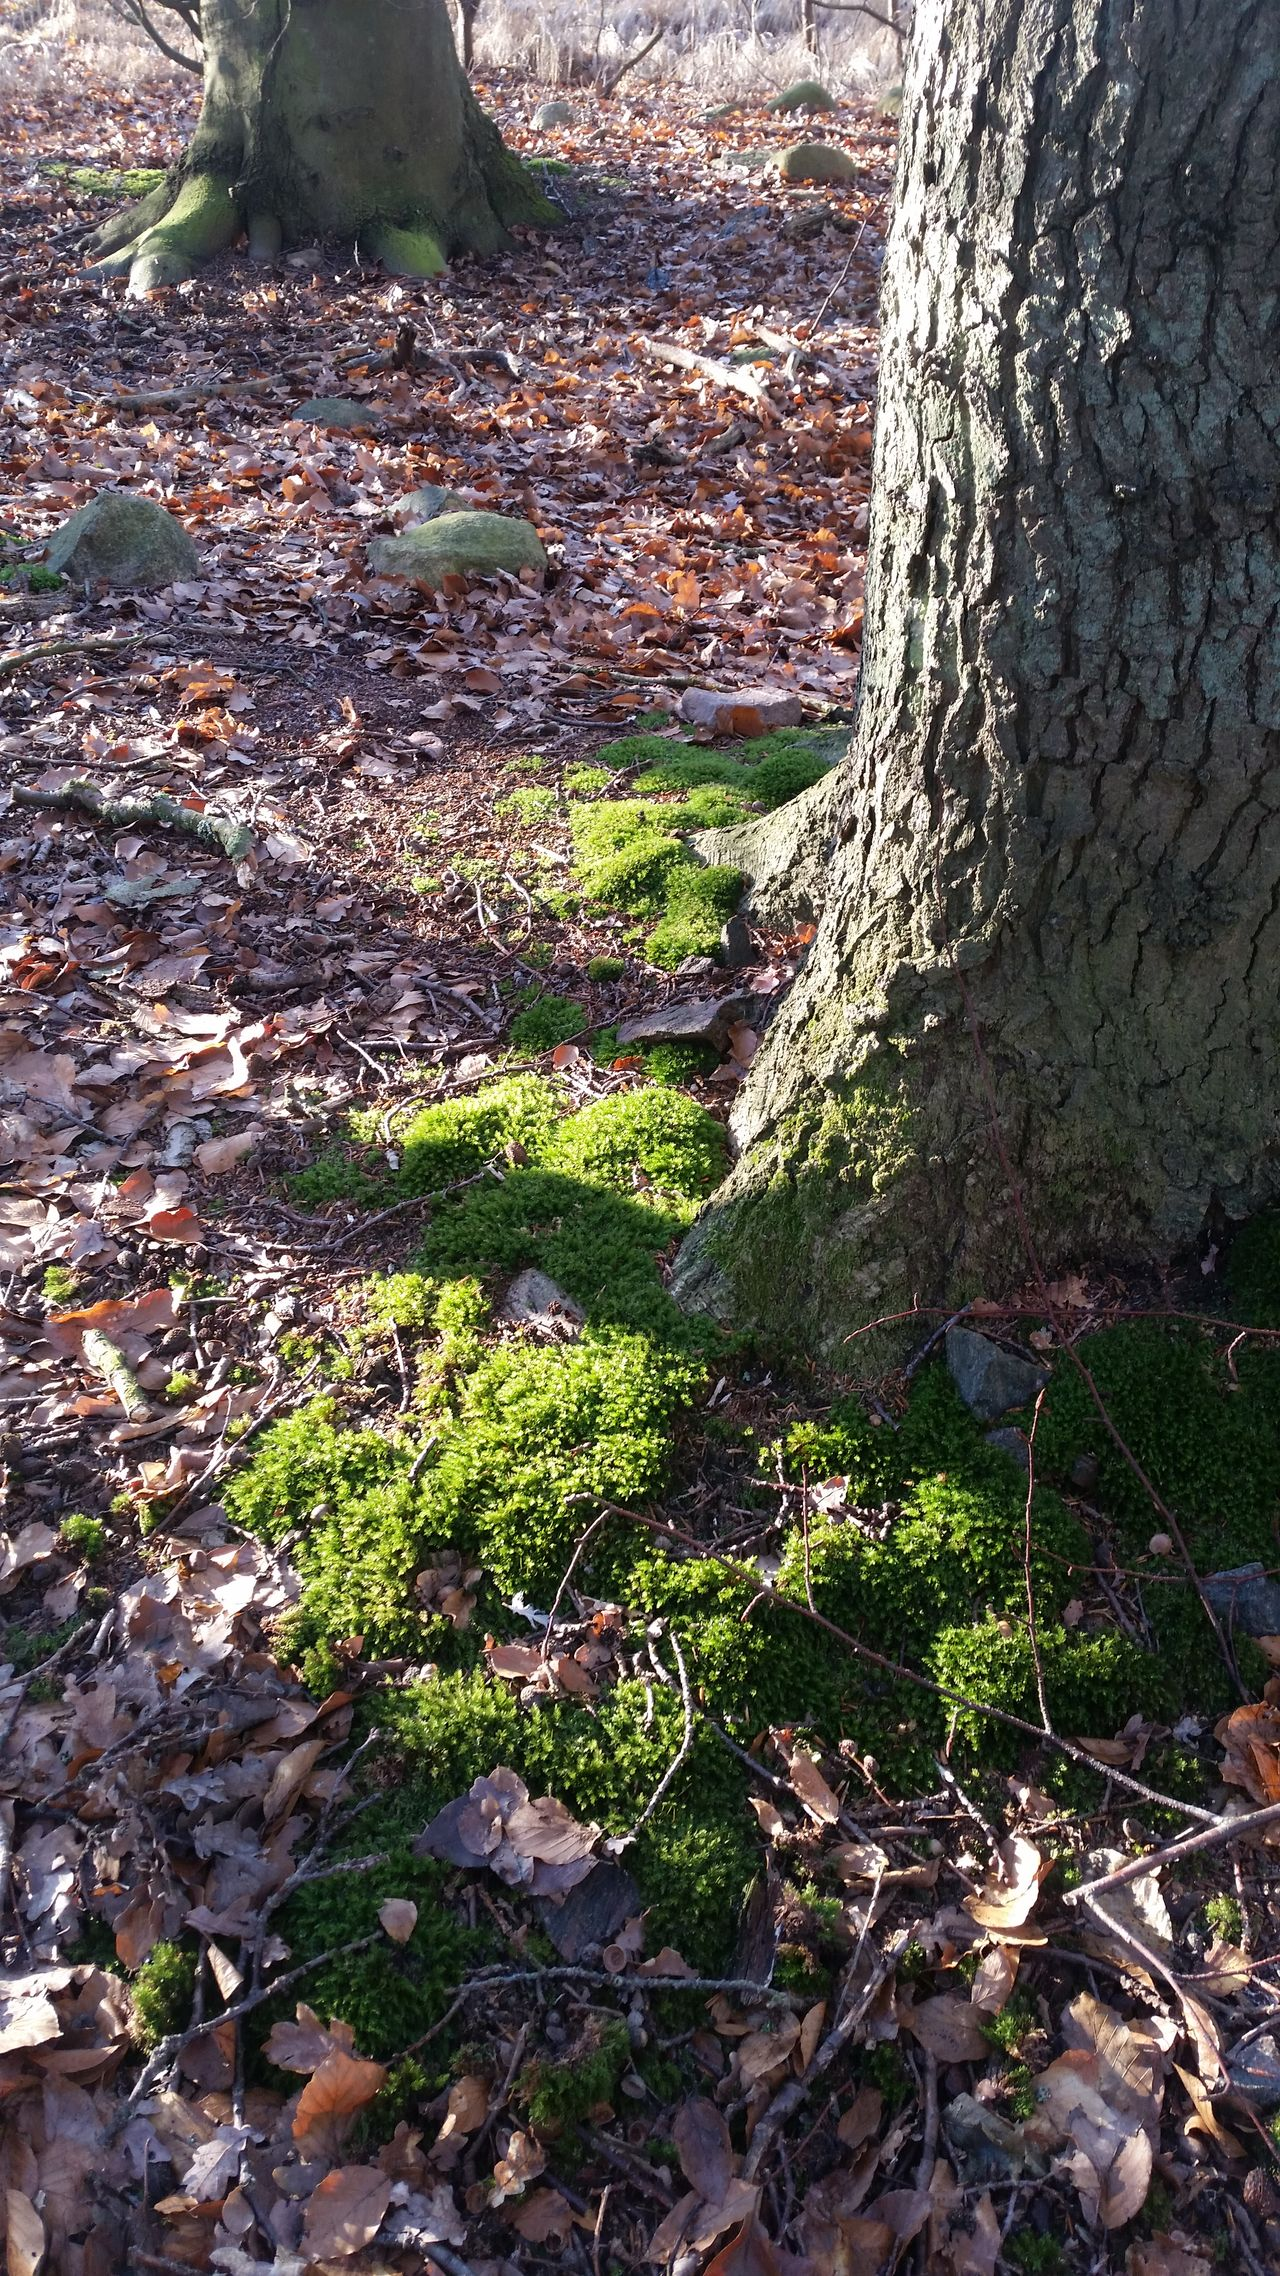 Sunlight on moss Nature No People Close-up Tree Outdoors Day Beauty In Nature Pic Of The Day Rural Scene Beautiful Taking Photos Sunshine Beauty In Nature Tranquil Scene Forest Sunlight Tranquility Winter Wintertime Fragility January Green Color Green Moss Fairytale